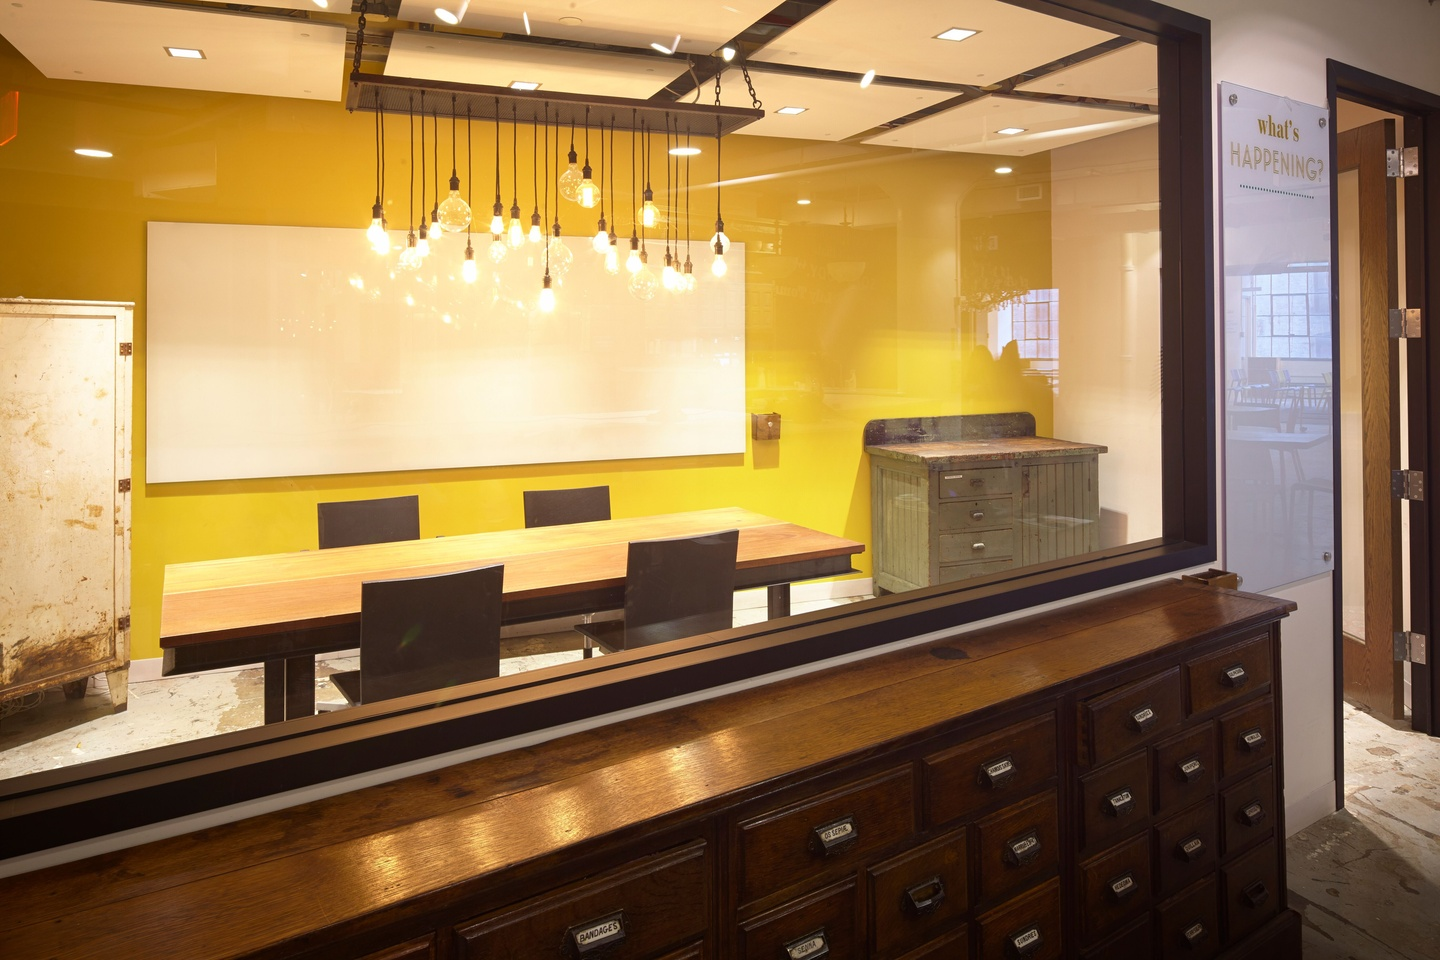 NYC conference rooms Coworking space Centre for Social Innovation - Meeting Room 1 image 1